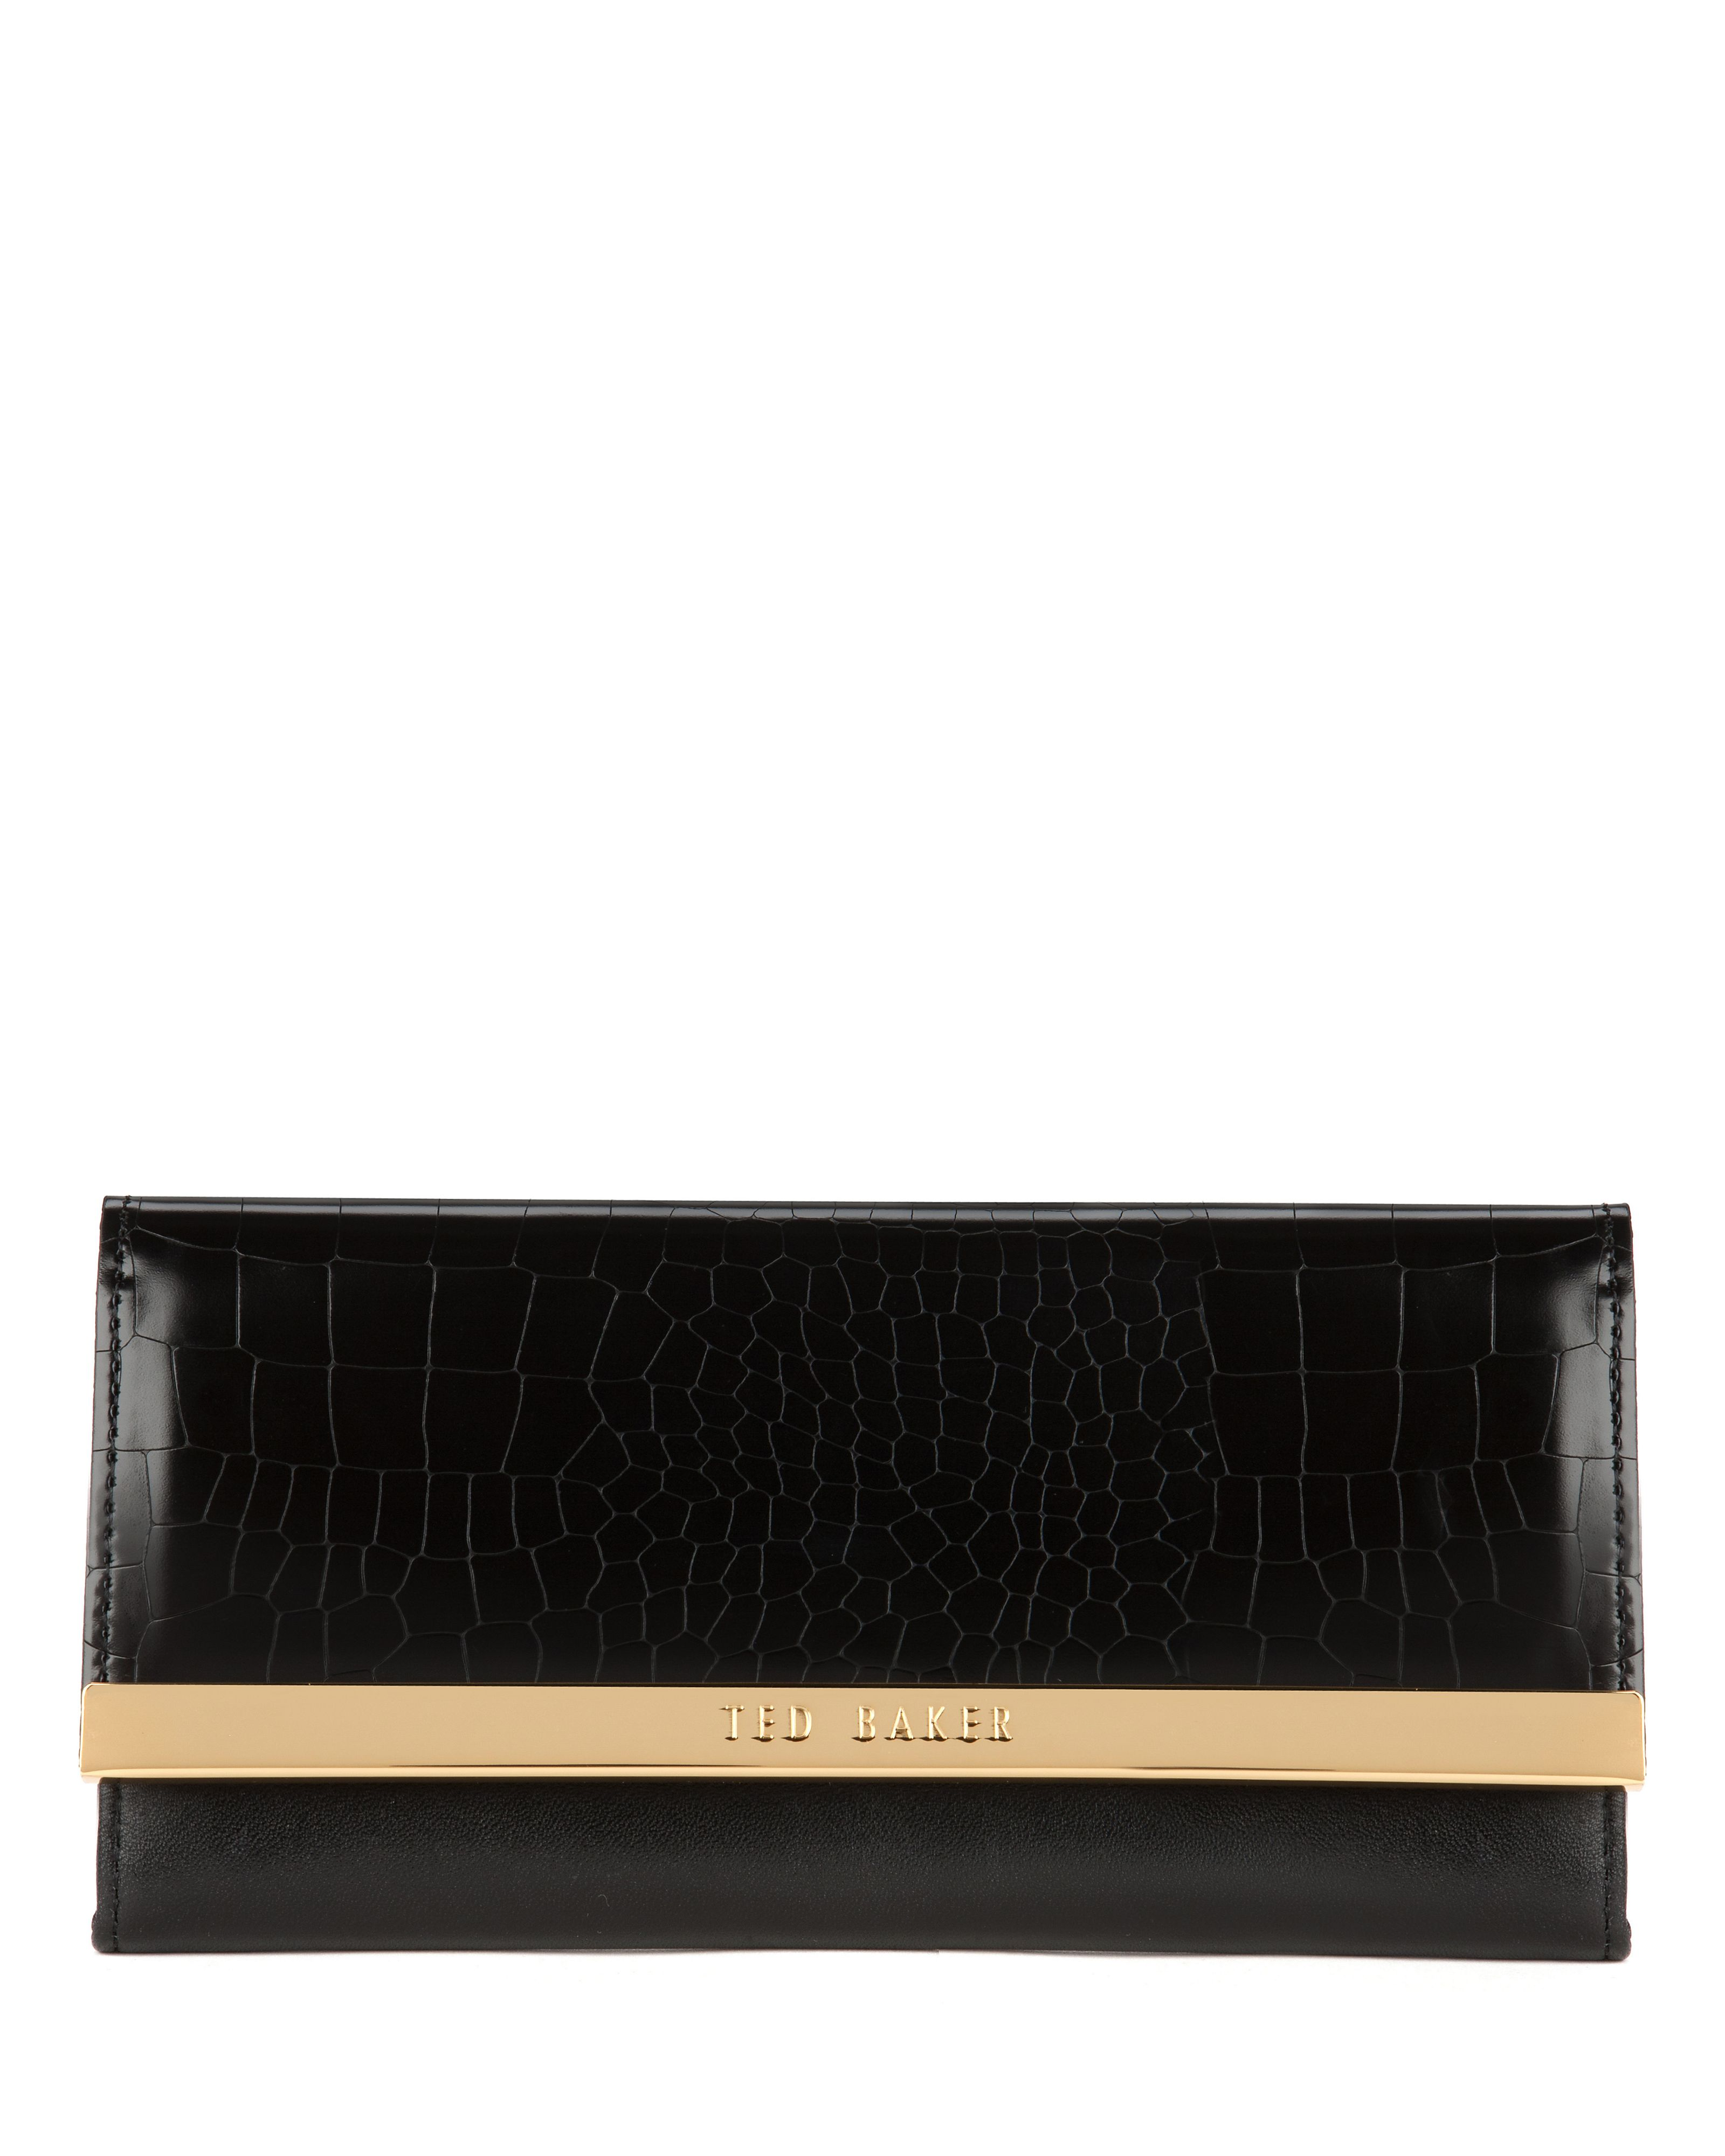 Moura clutch bag